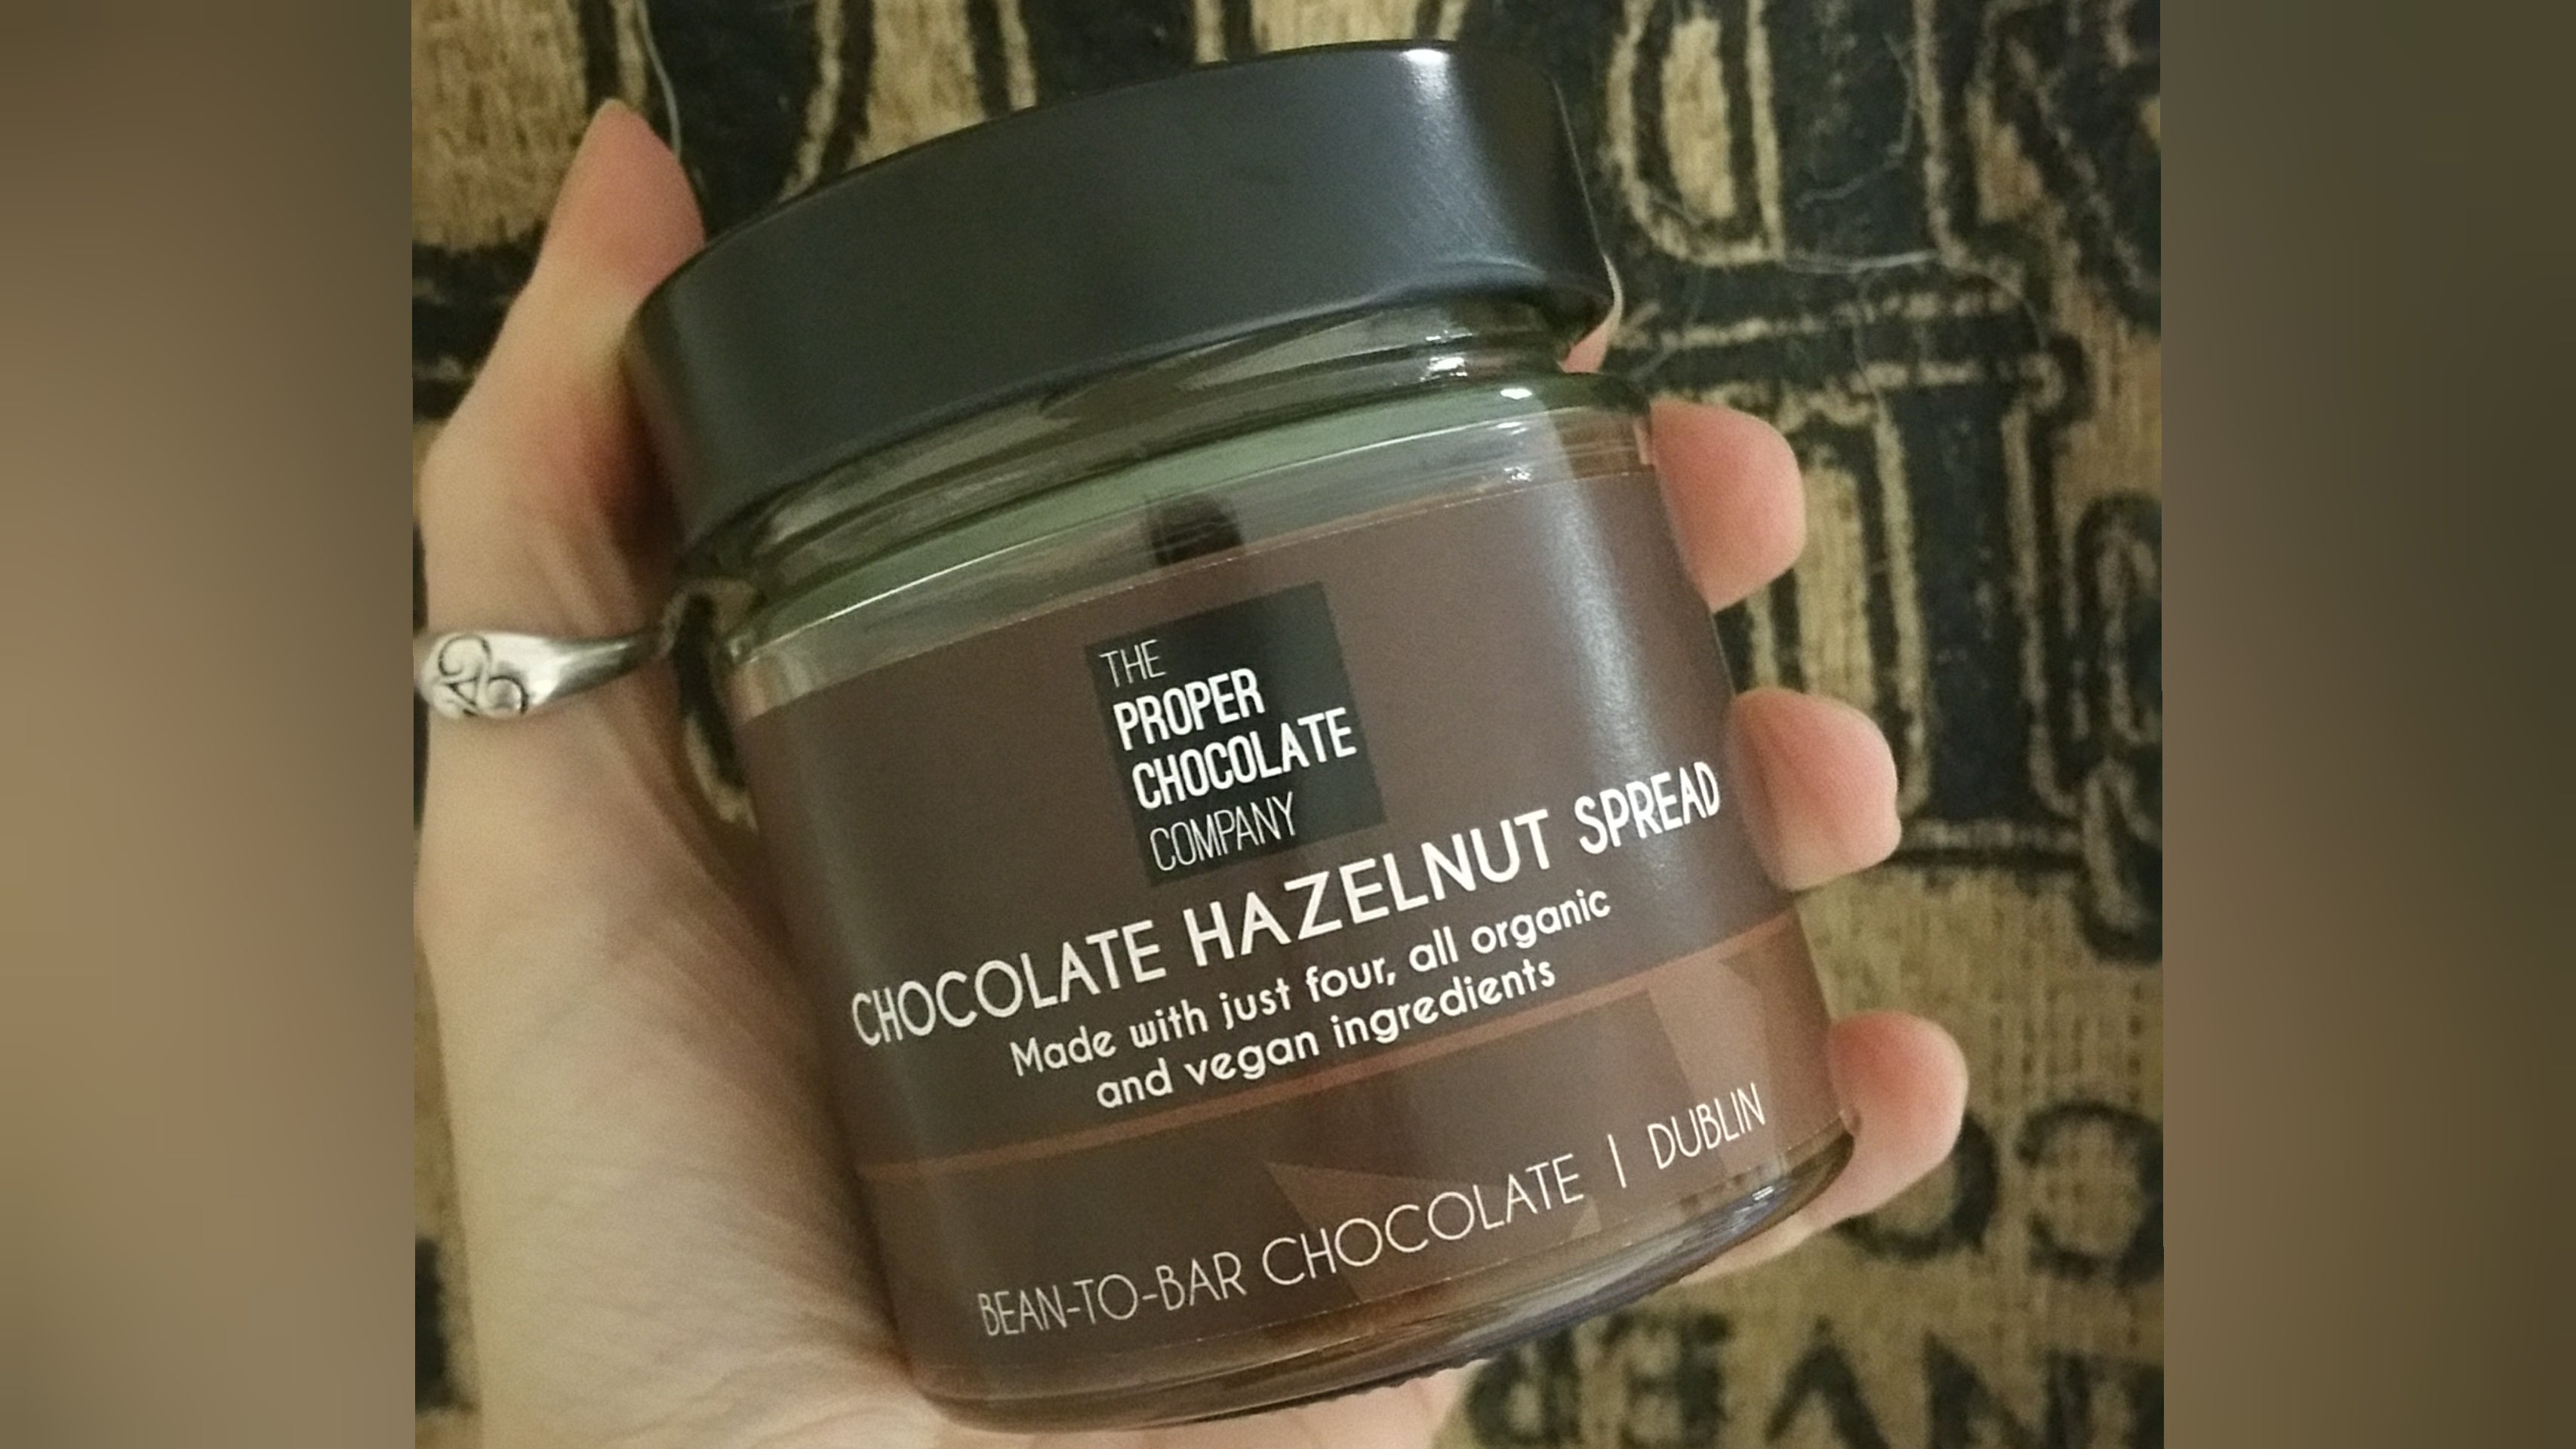 Chocolate Hazelnut Spread - 4 ingredients, all organic